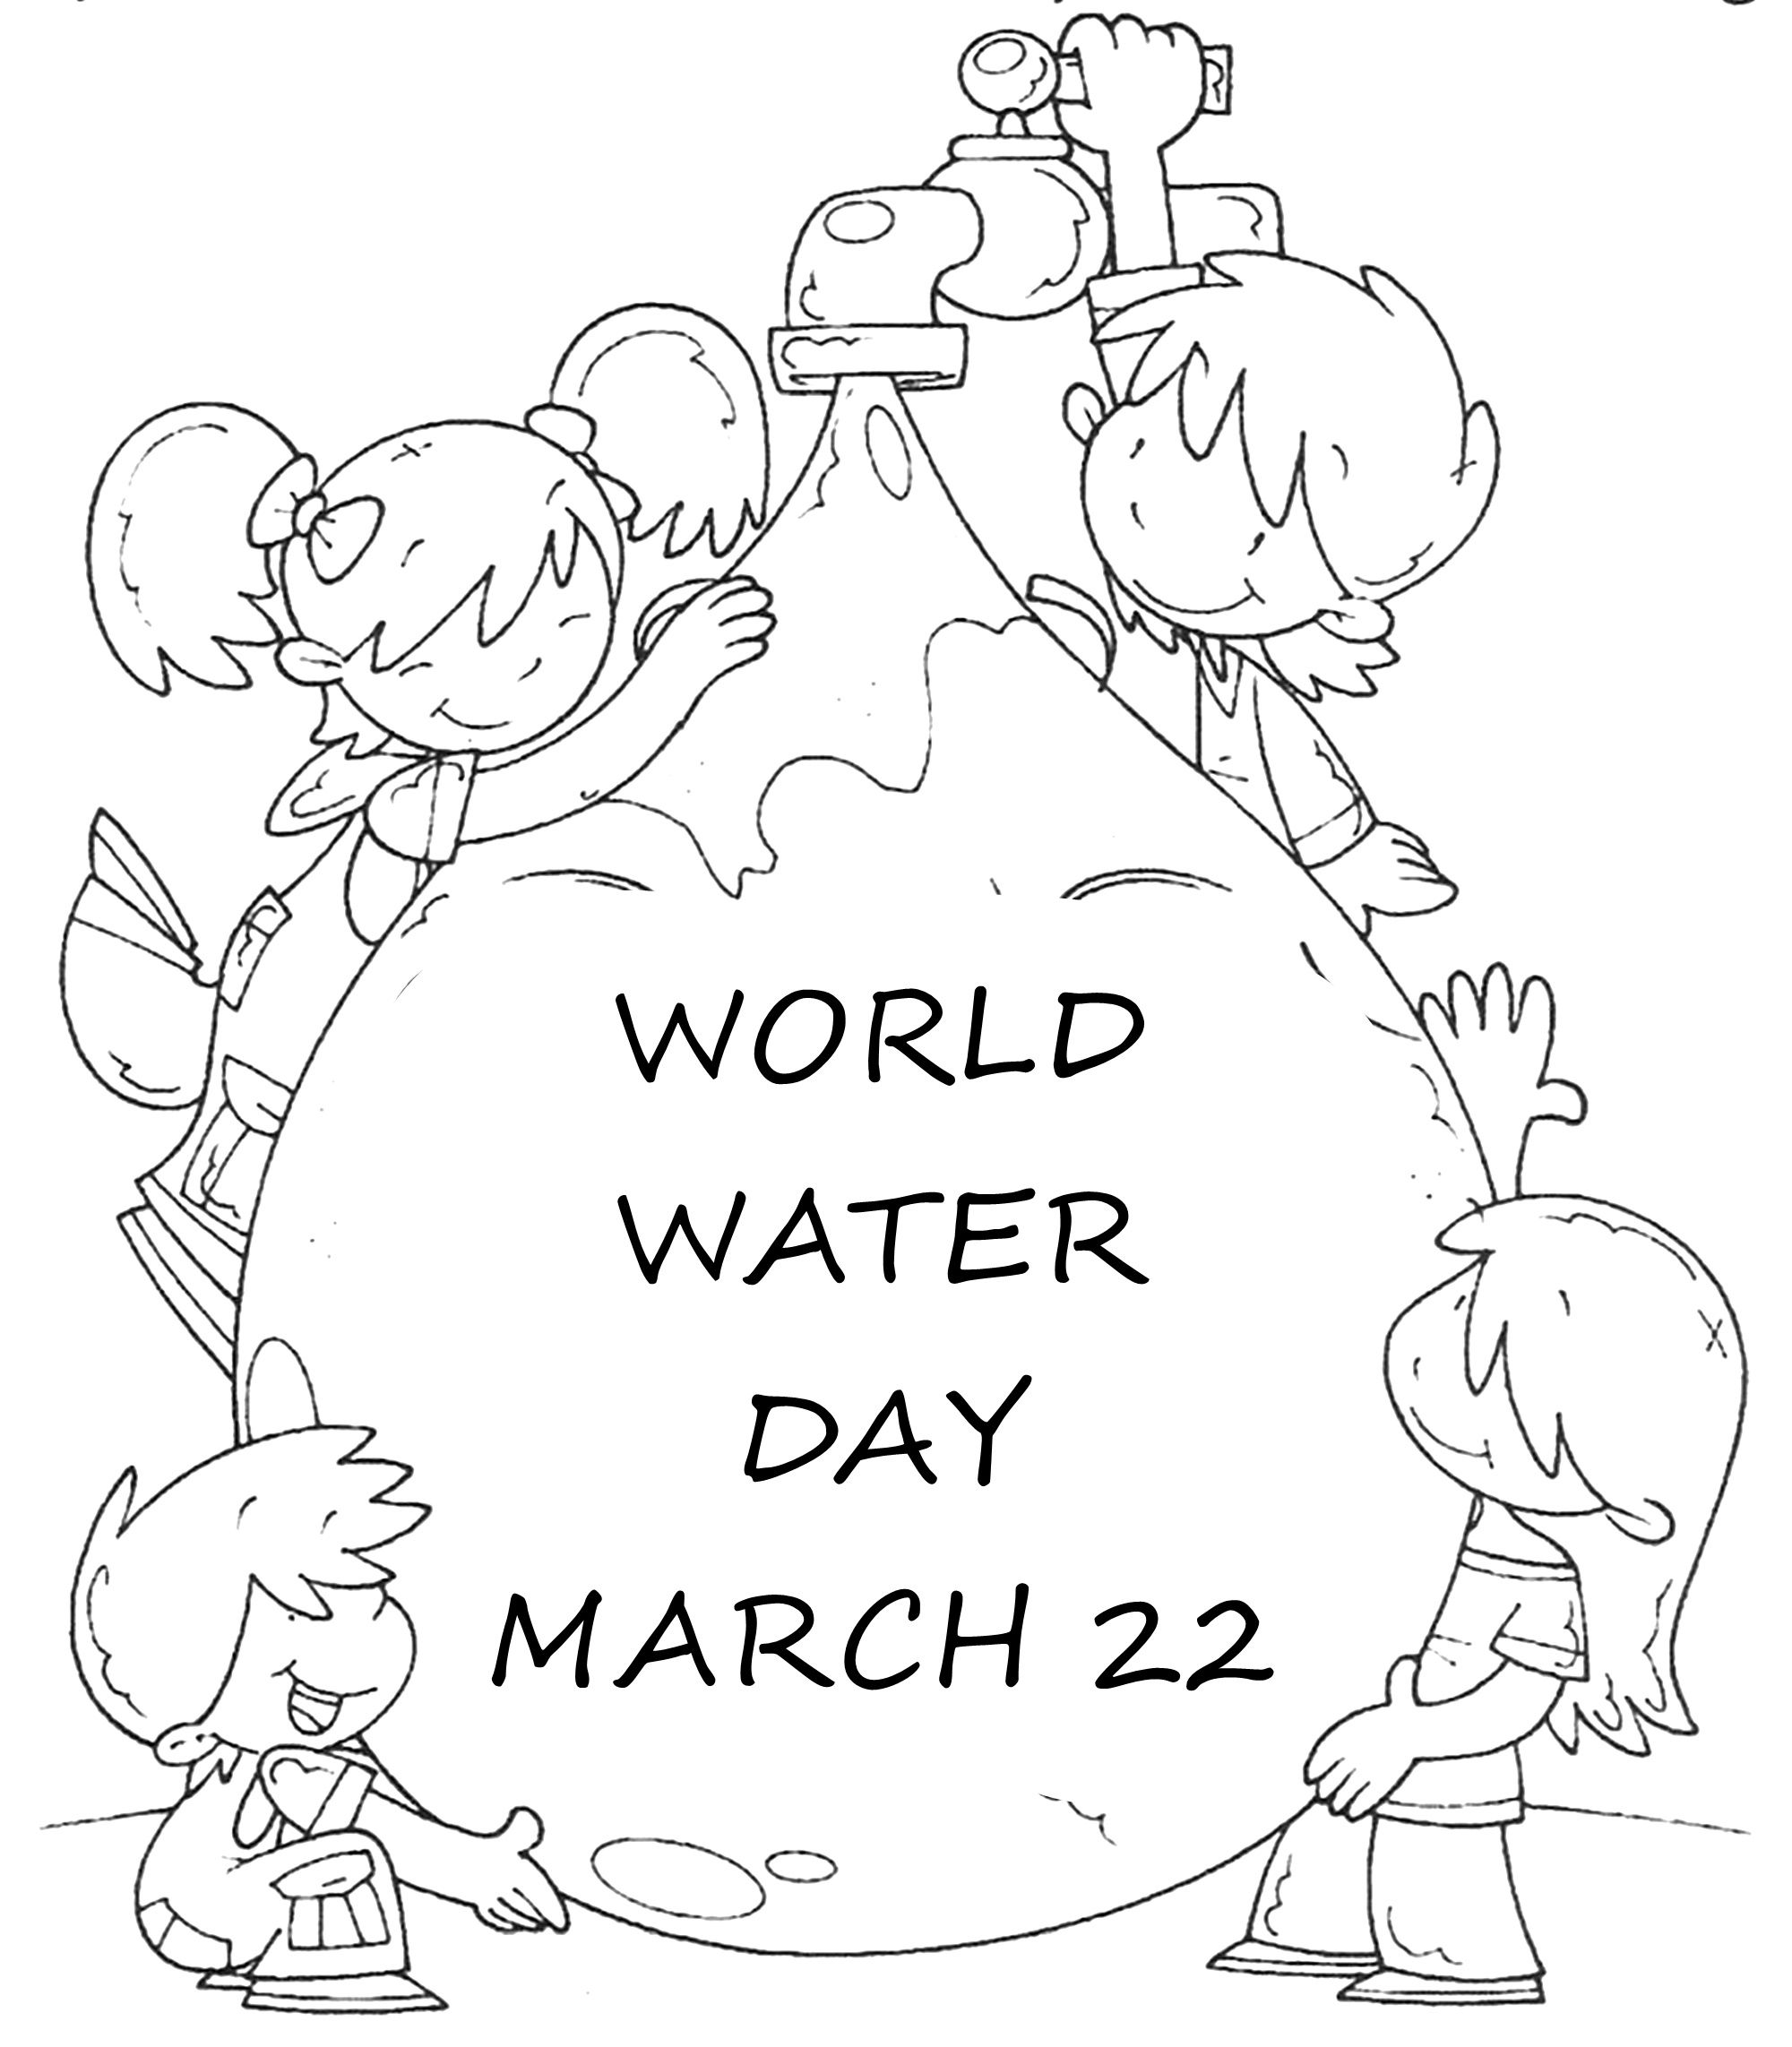 world water day coloring page activity | Earth Day | Pinterest ...